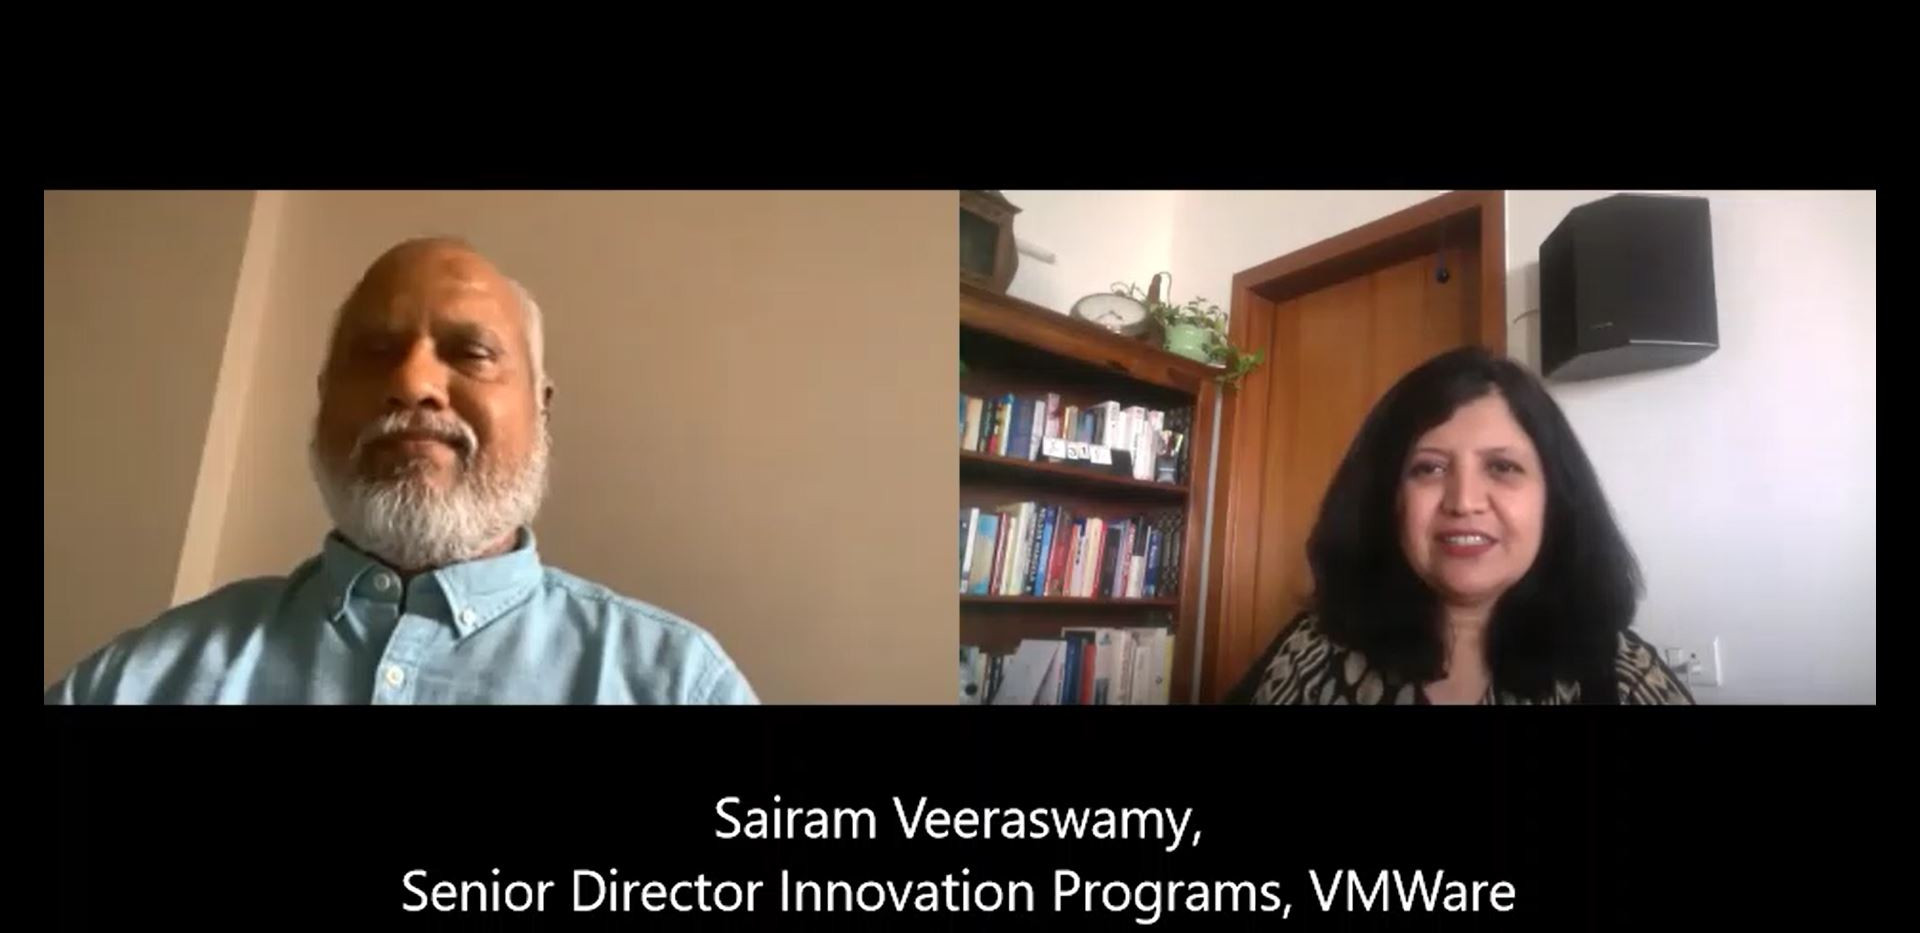 Interview with Sairam Veeraswamy